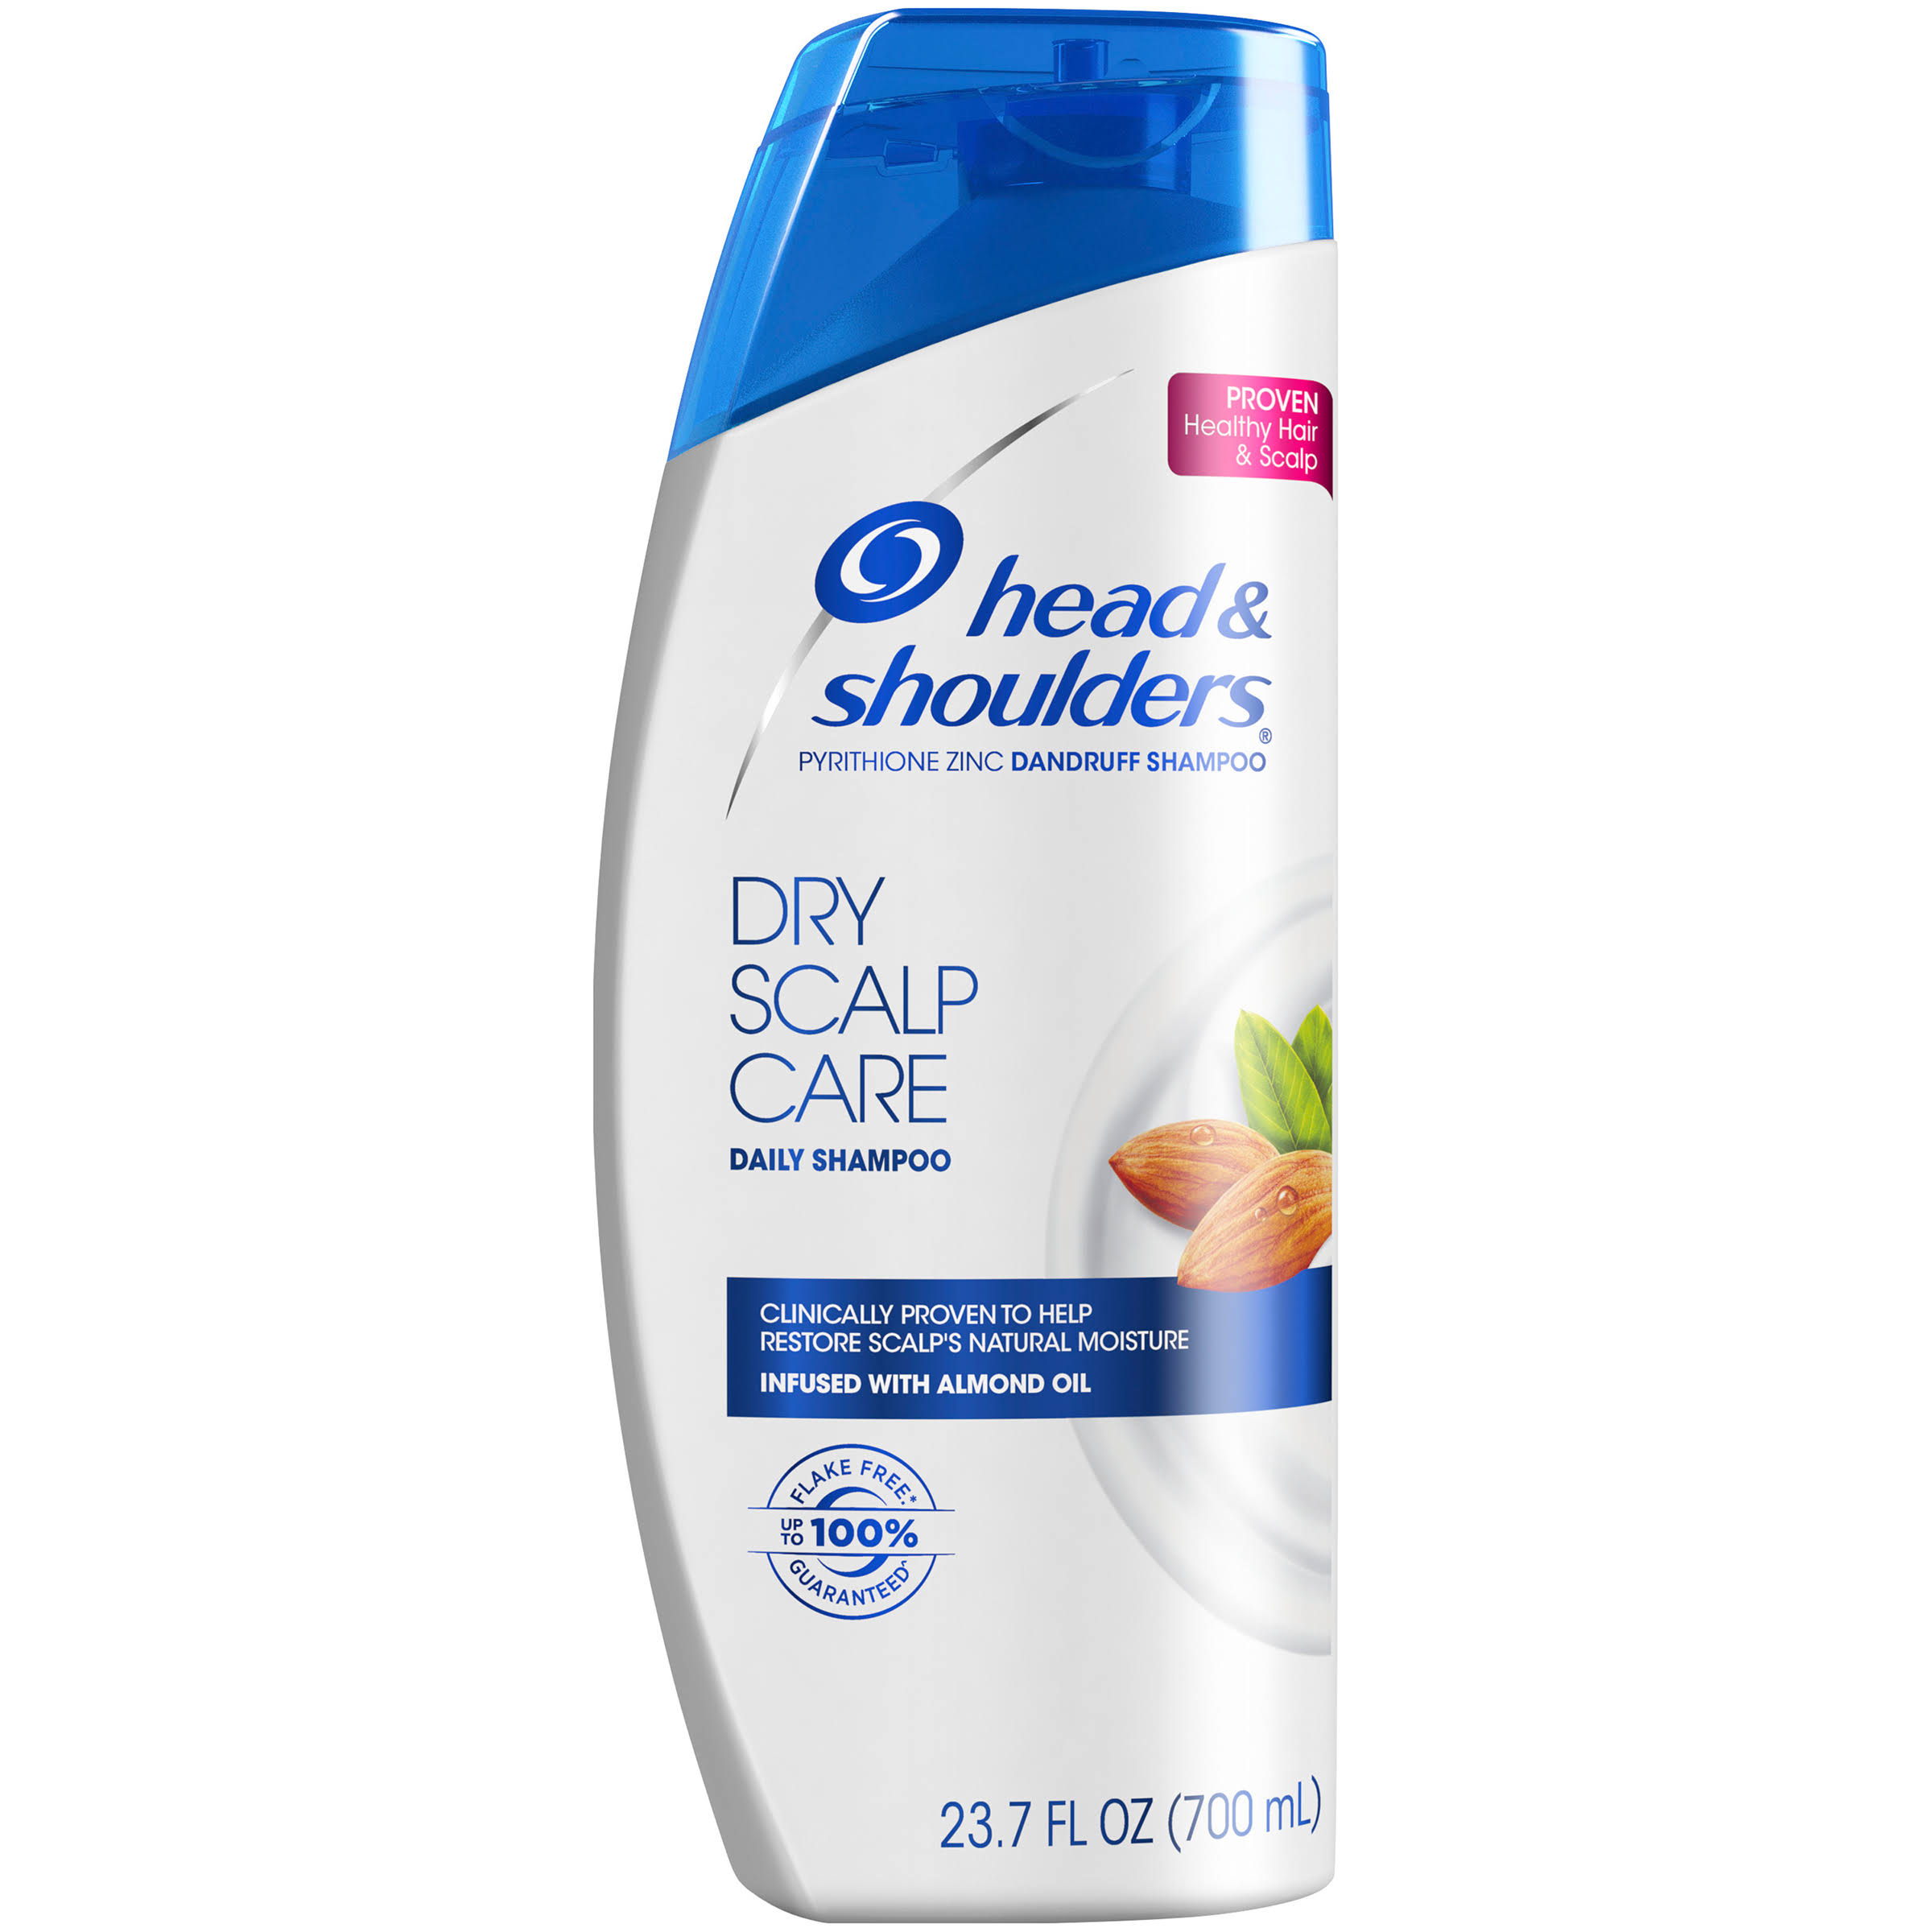 Head & Shoulders Dry Scalp Care Almond Oil Dandruff Shampoo - 23.7oz